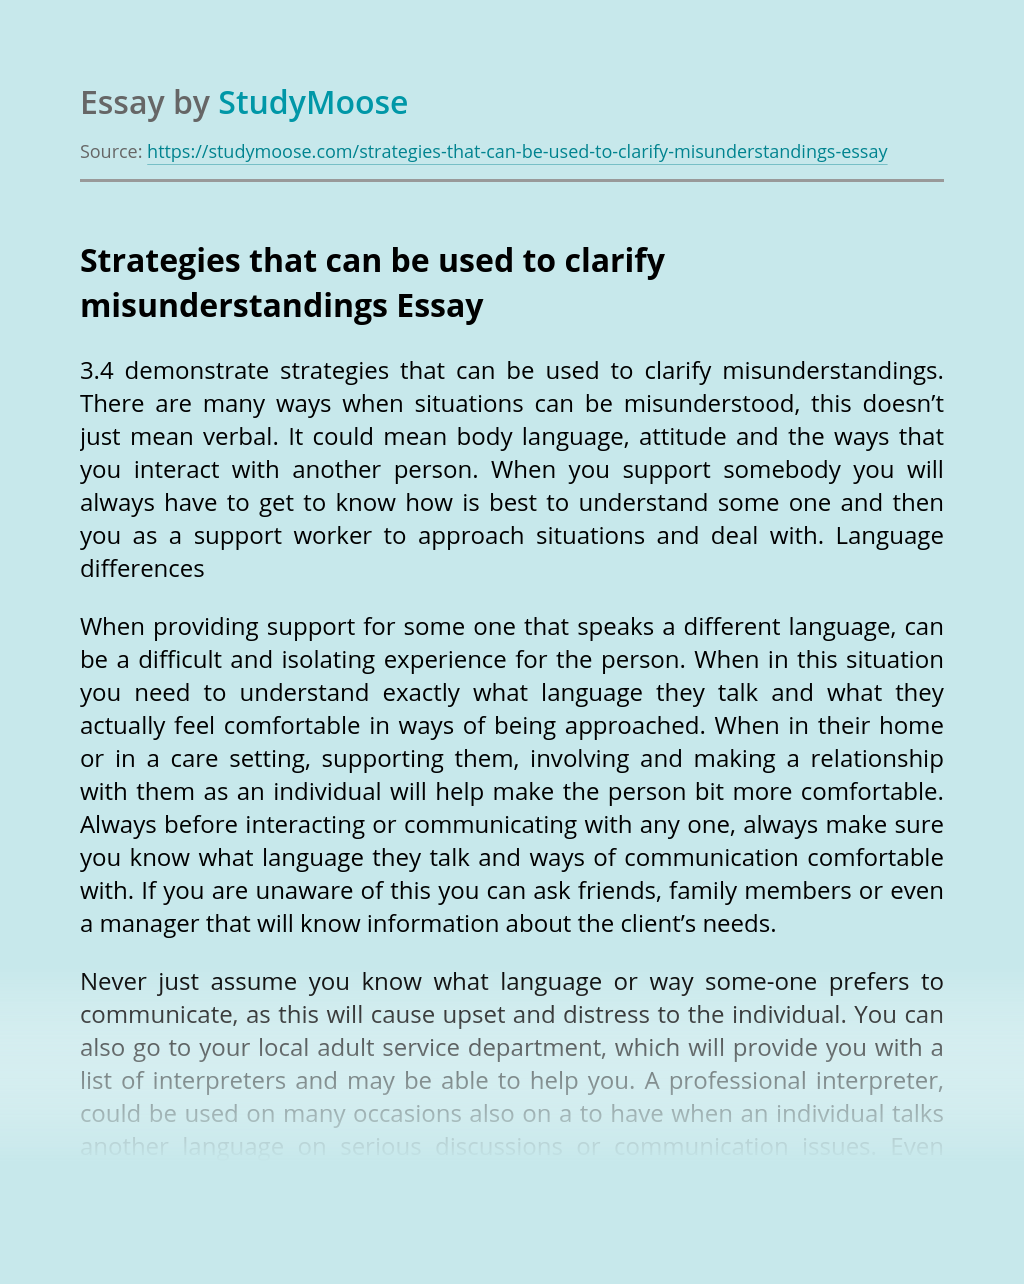 Strategies that can be used to clarify misunderstandings